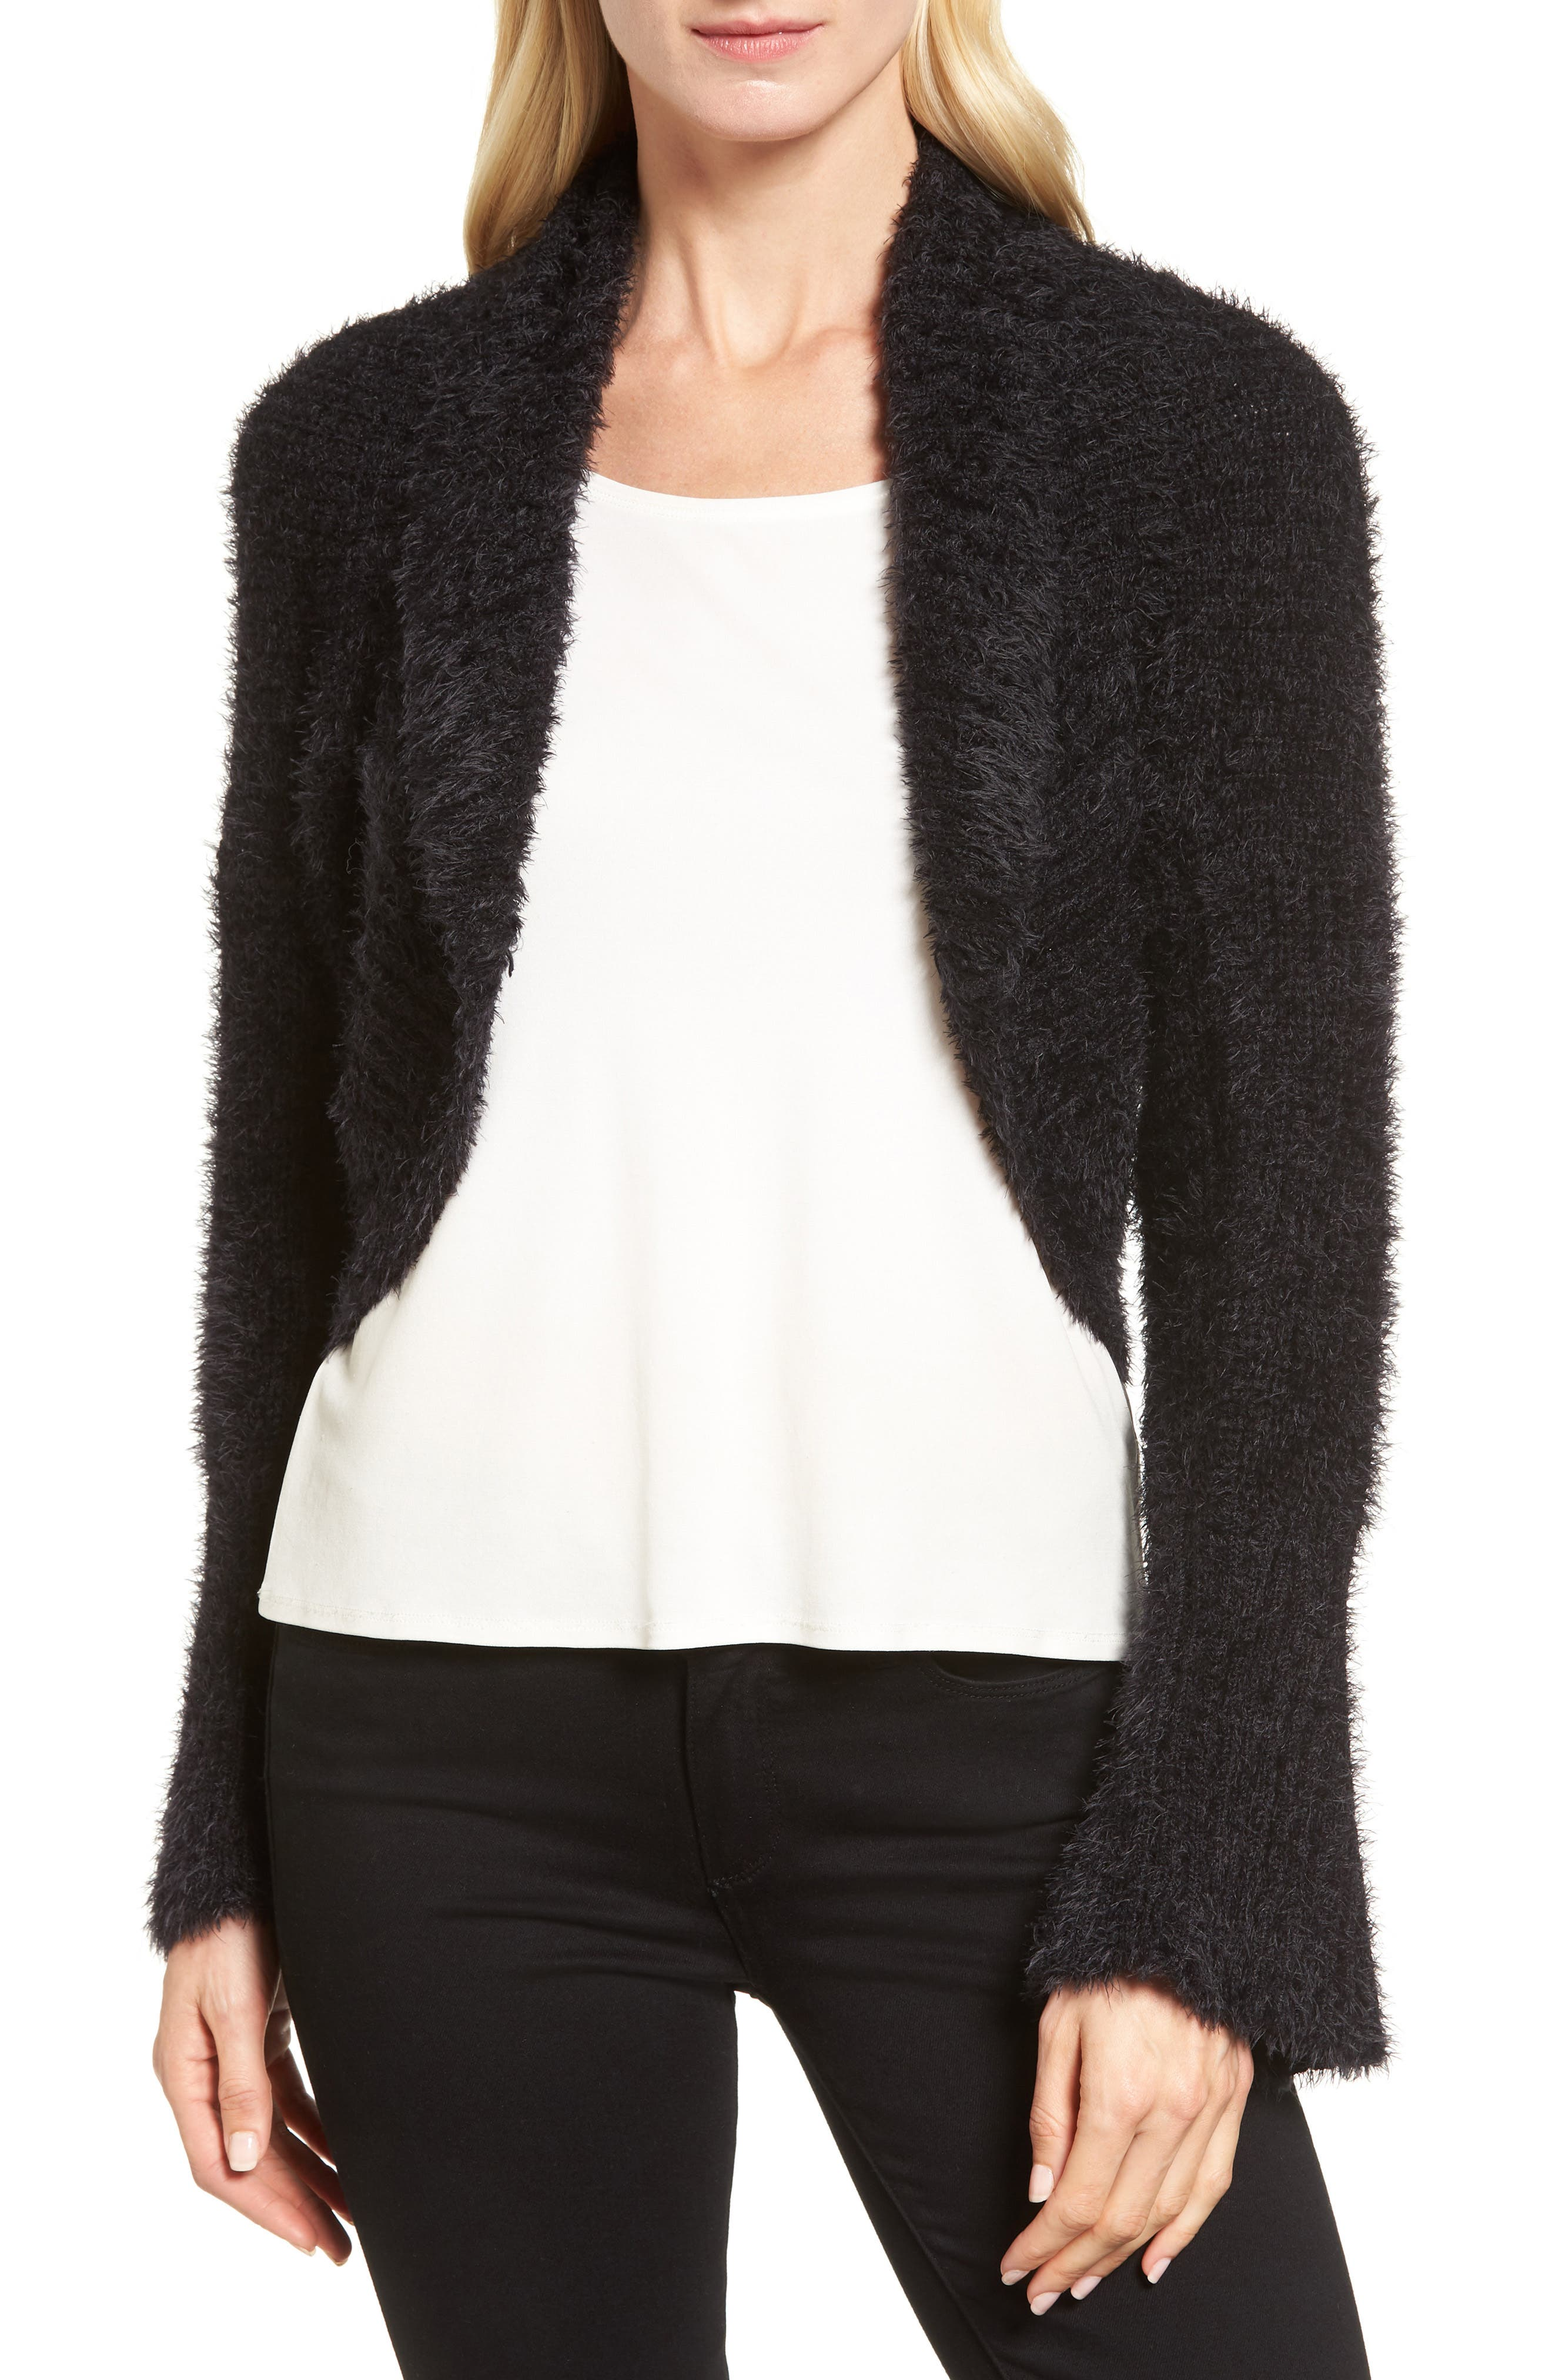 Alternate Image 1 Selected - NIC+ZOE Glacier Cardigan (Regular & Petite)